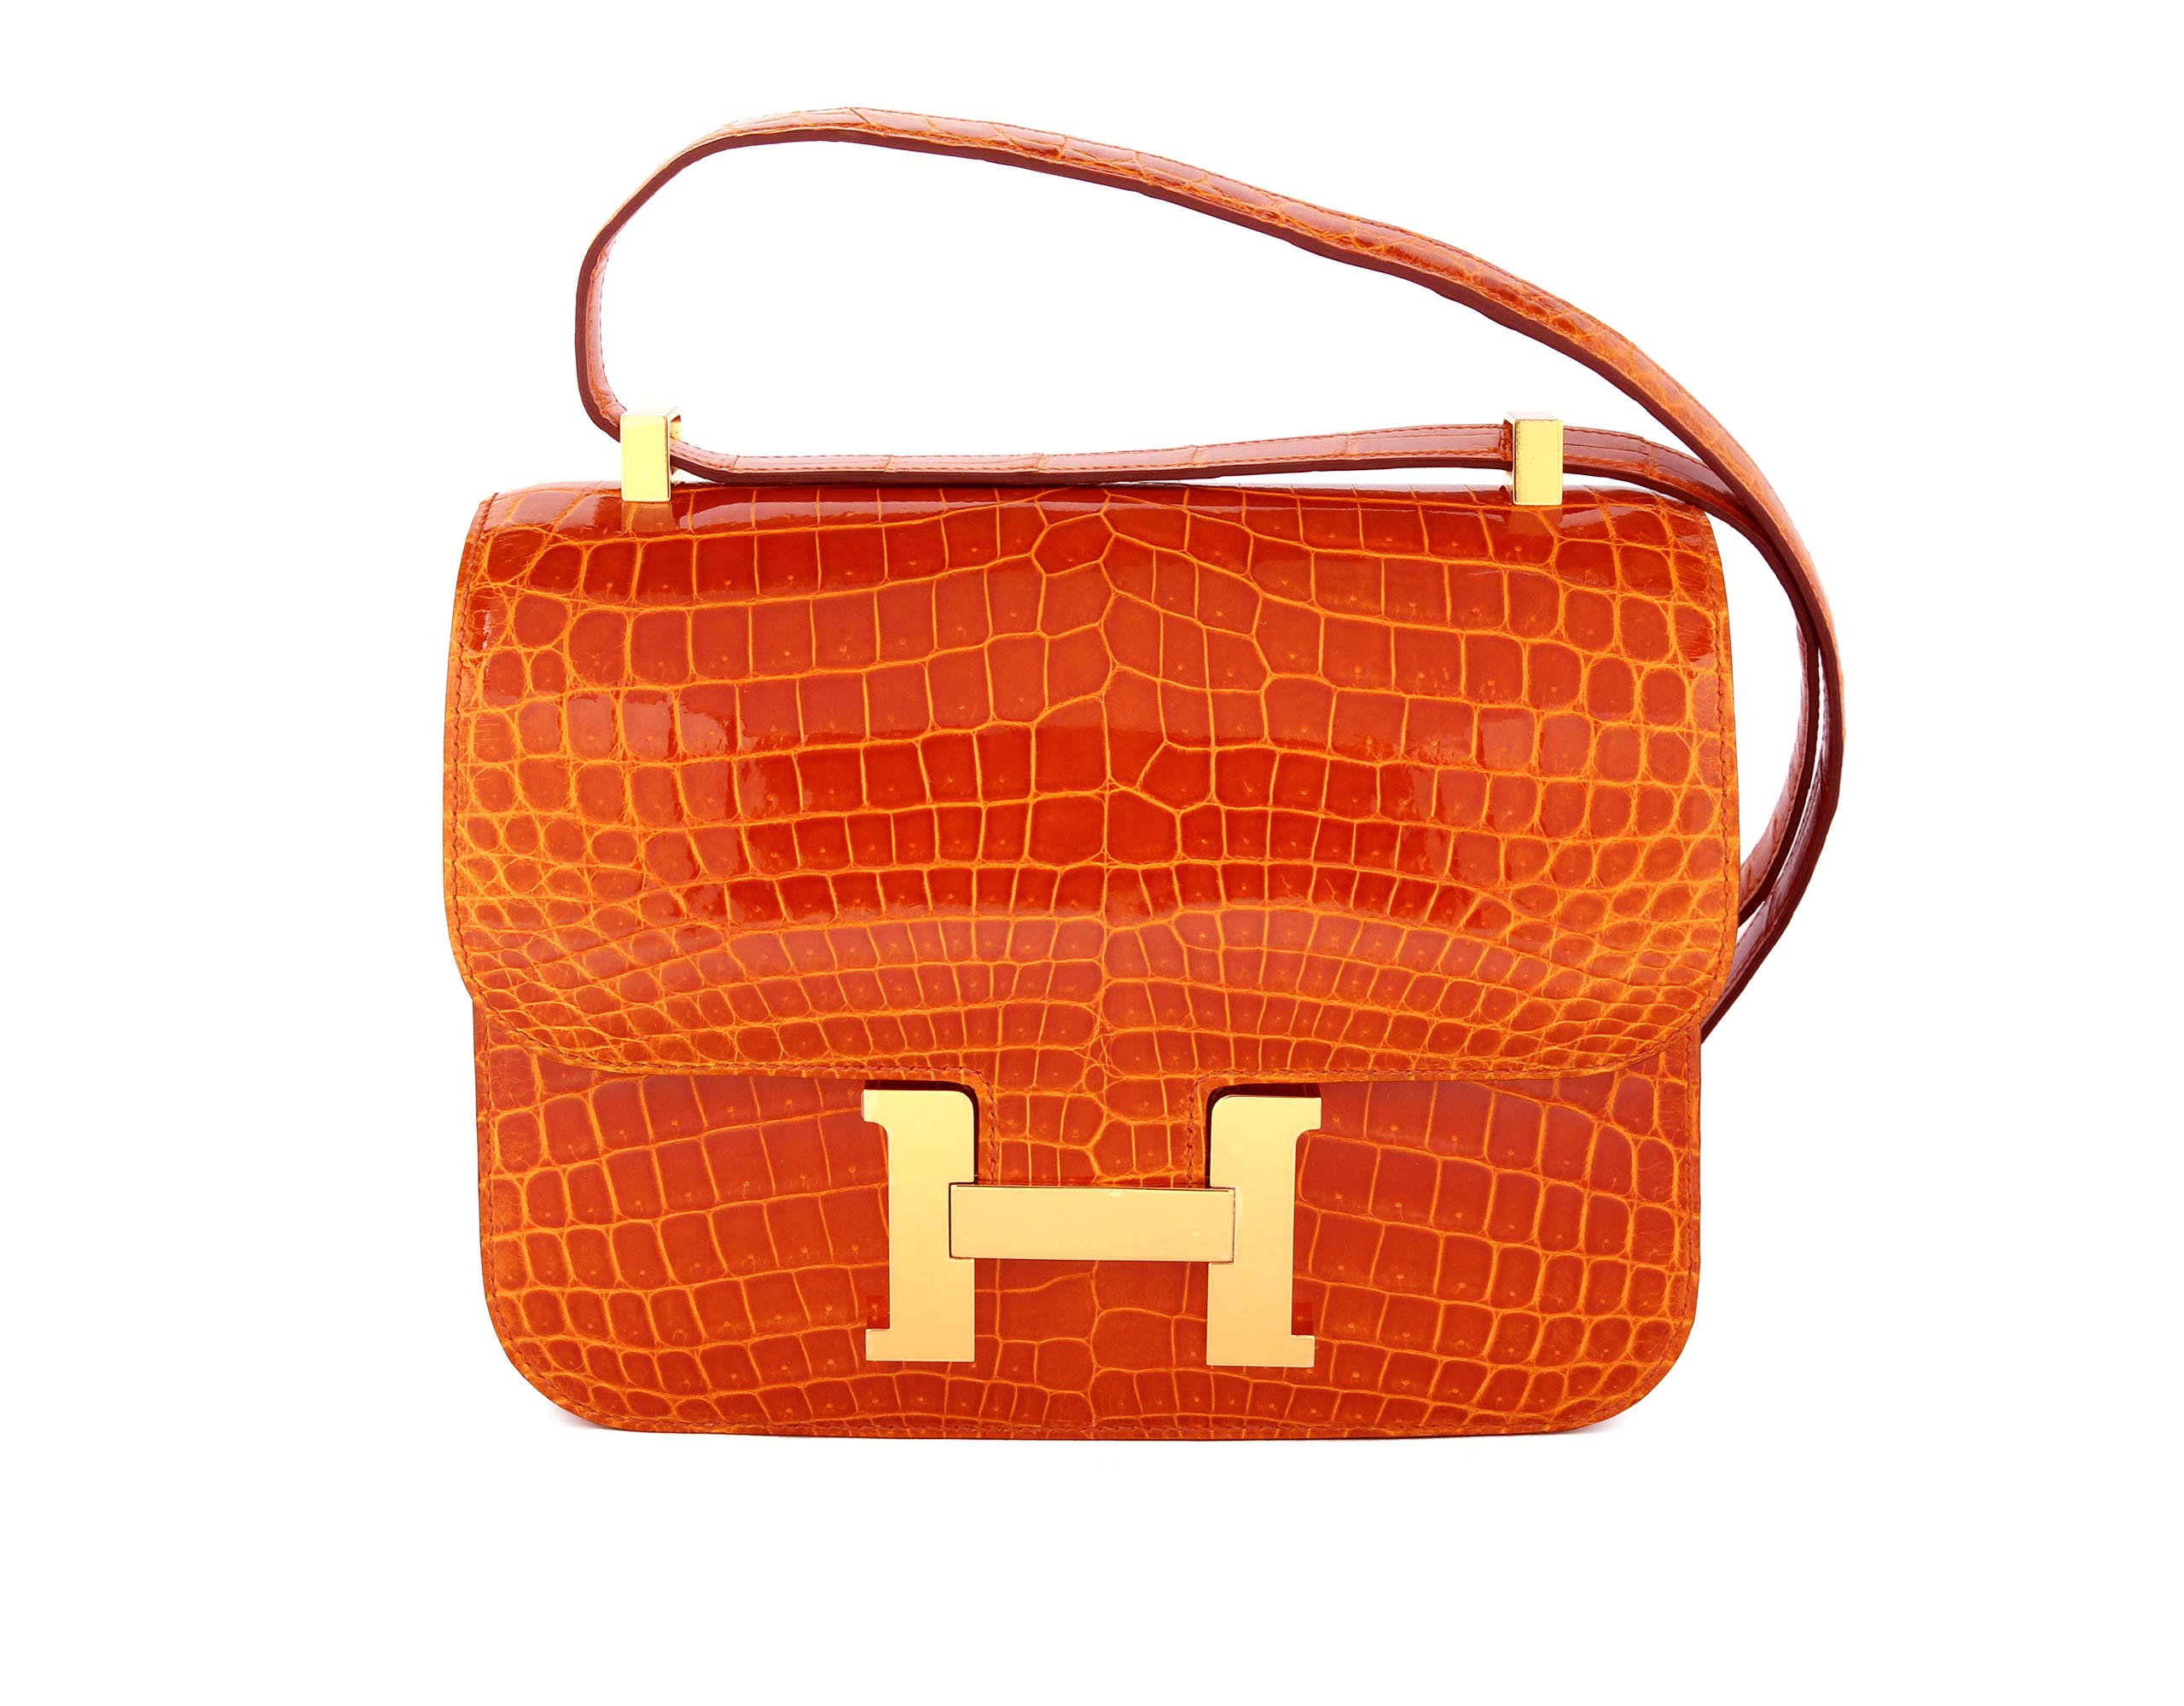 Hermes Constance Pain D'Epice Shiney Nilo Croc with Gold